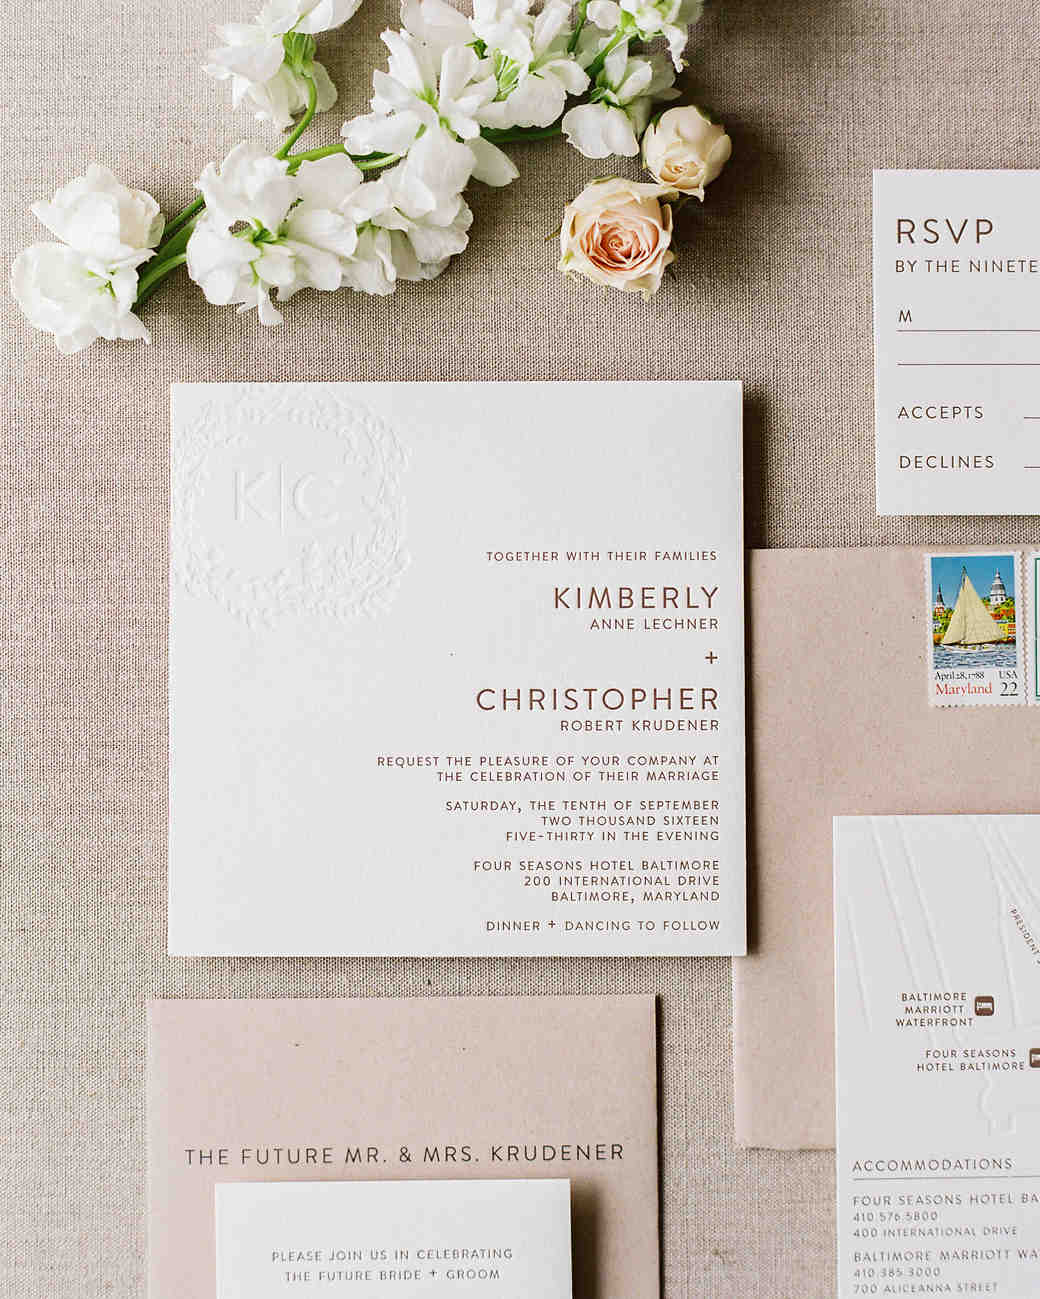 Paper Protocol Experts Share Their Best Wedding Invitation Advice